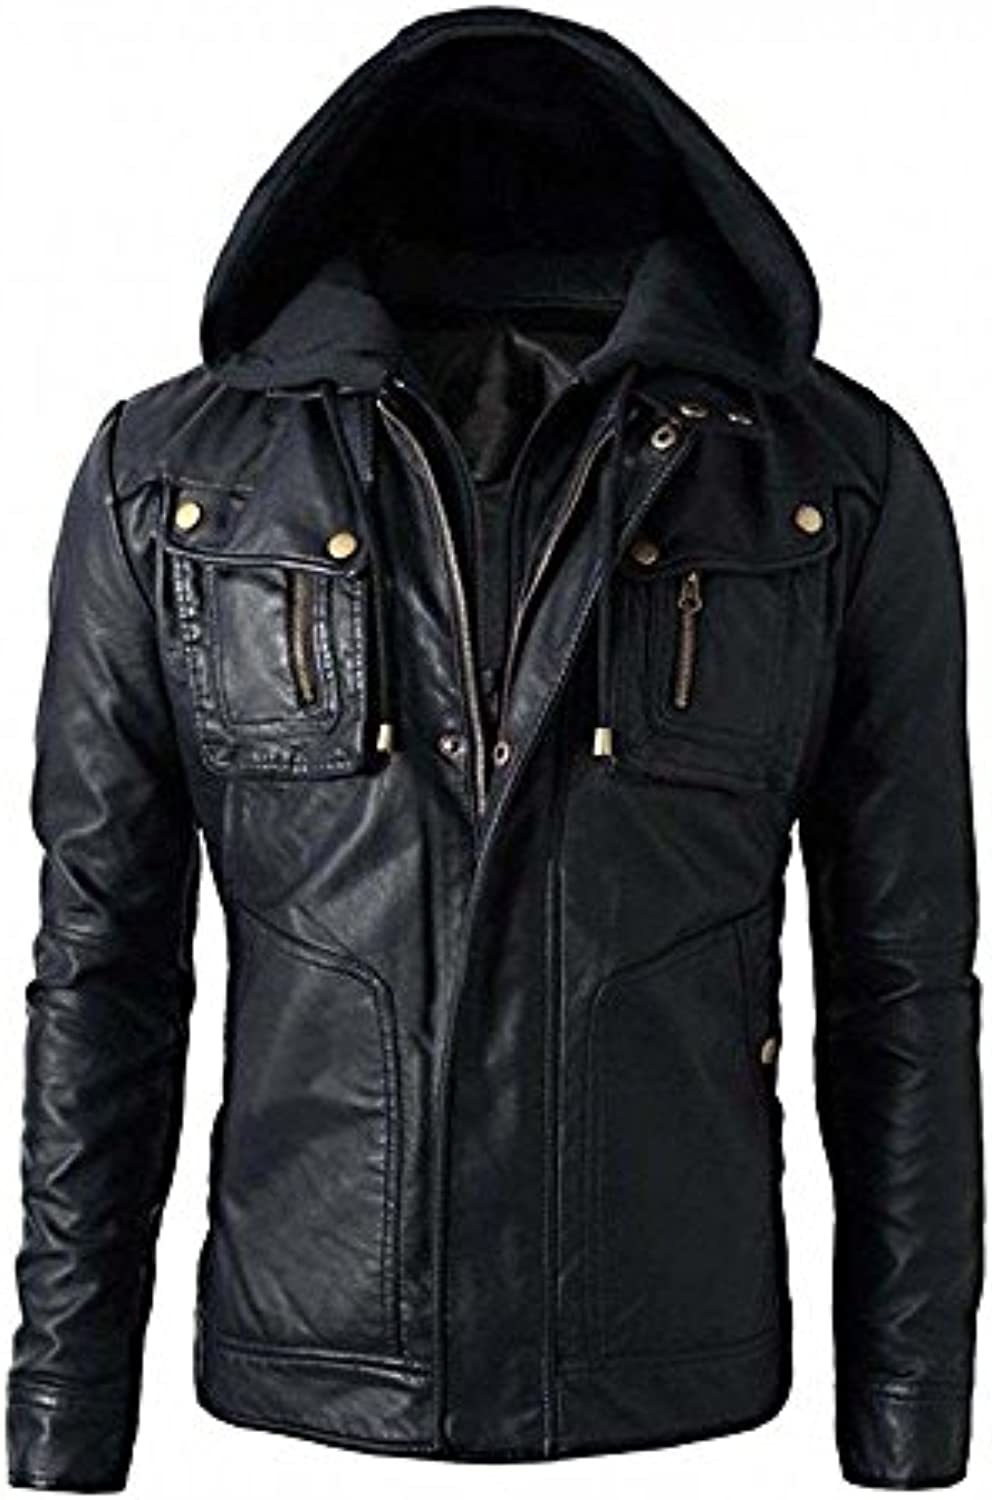 Superior Leather Giacca Garments - Giacca Leather - Cappotto - Uomo dd2111 37bc4ac67c6